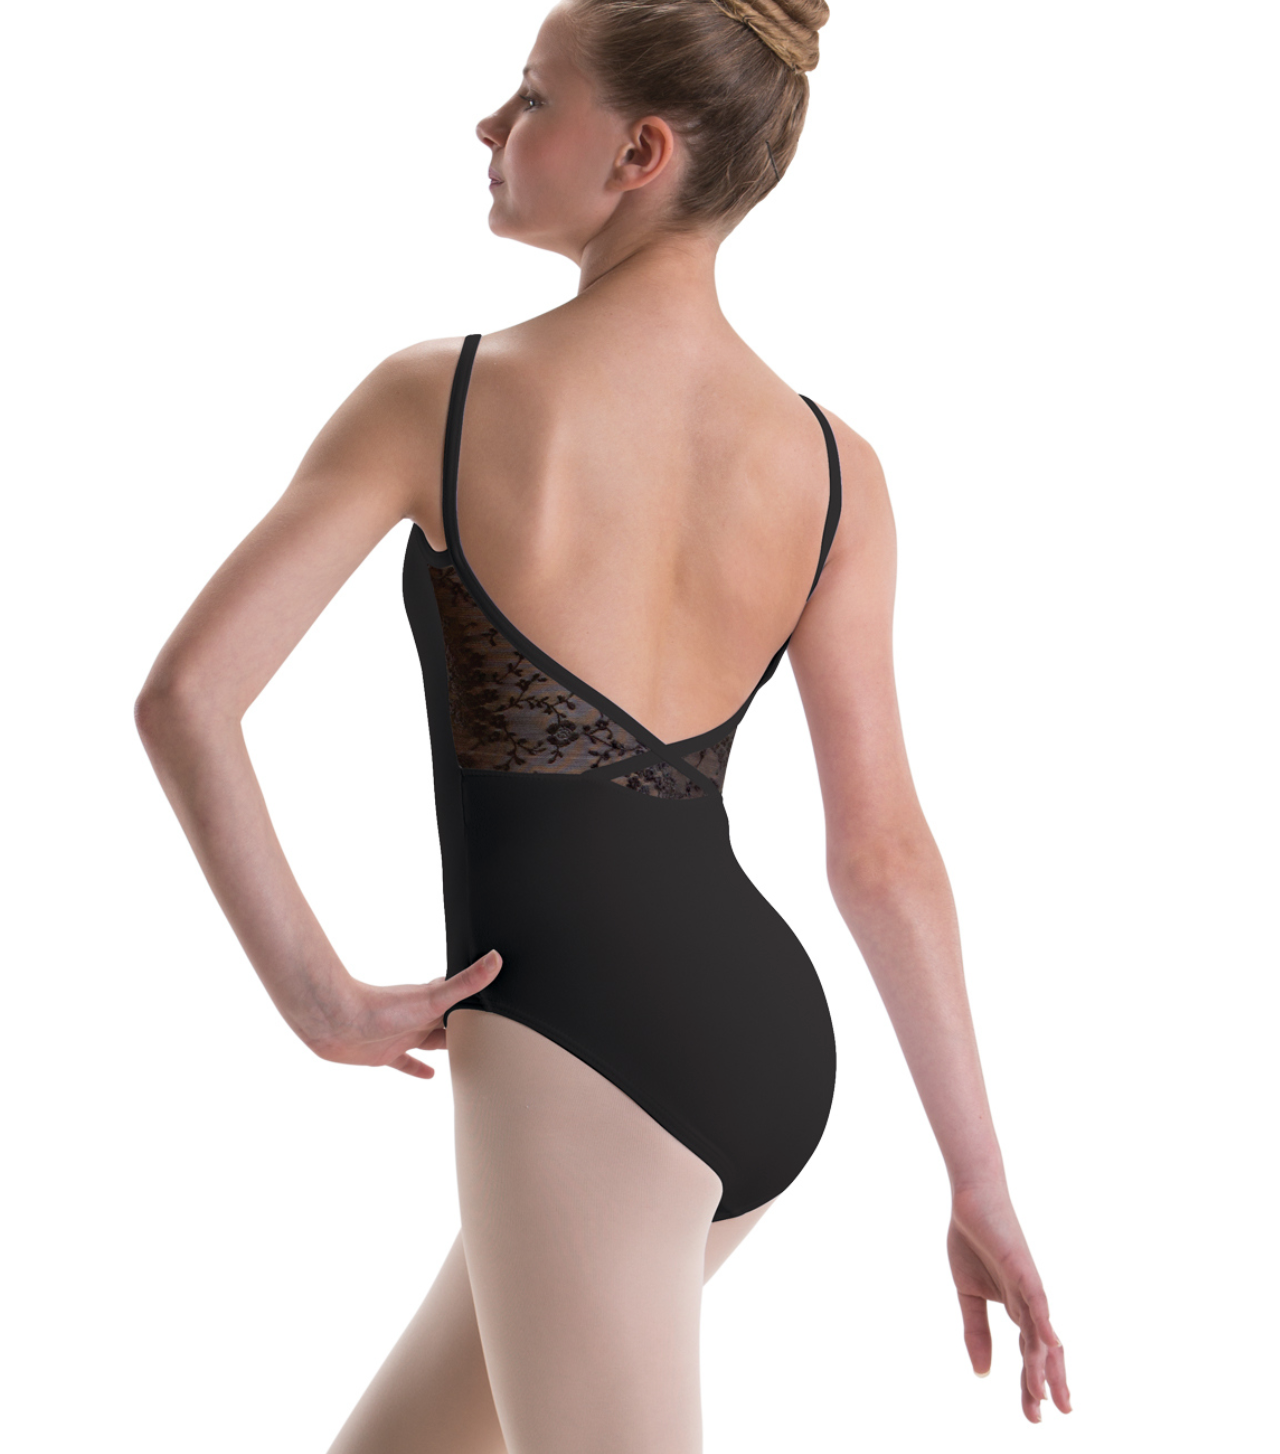 Motionwear Patterned Mesh Back Camisole Leotard - 2530